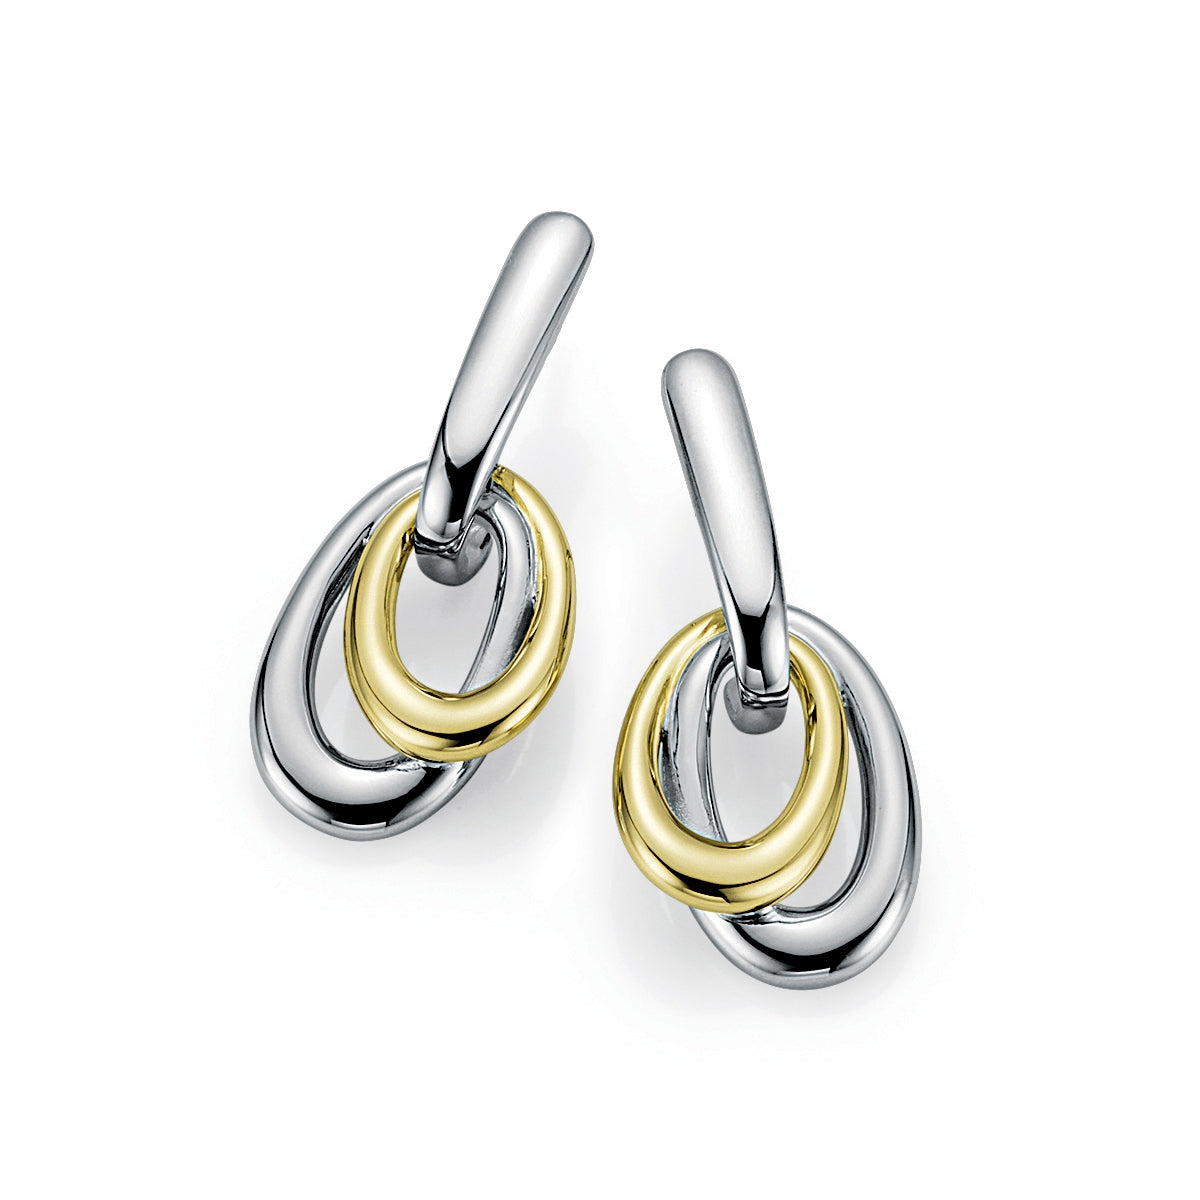 Oval Loop Dangle Earrings, Sterling Silver and Yellow Gold Plating